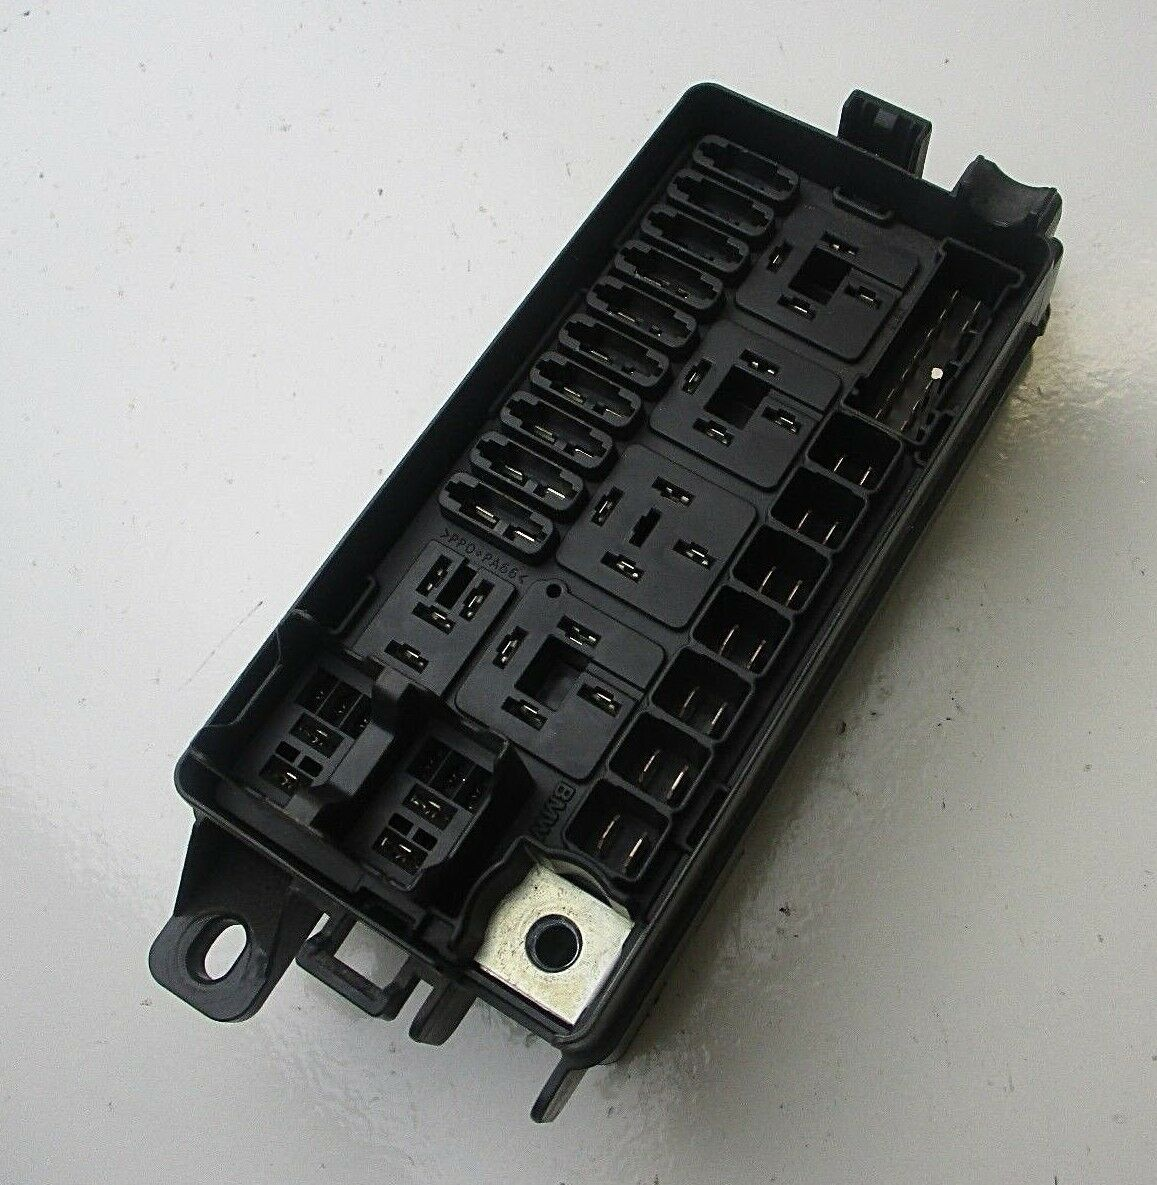 Bmw Mini Fuse Box Schematics Wiring Diagram 2013 X3 One Cooper S For R50 R53 1480790 14 99